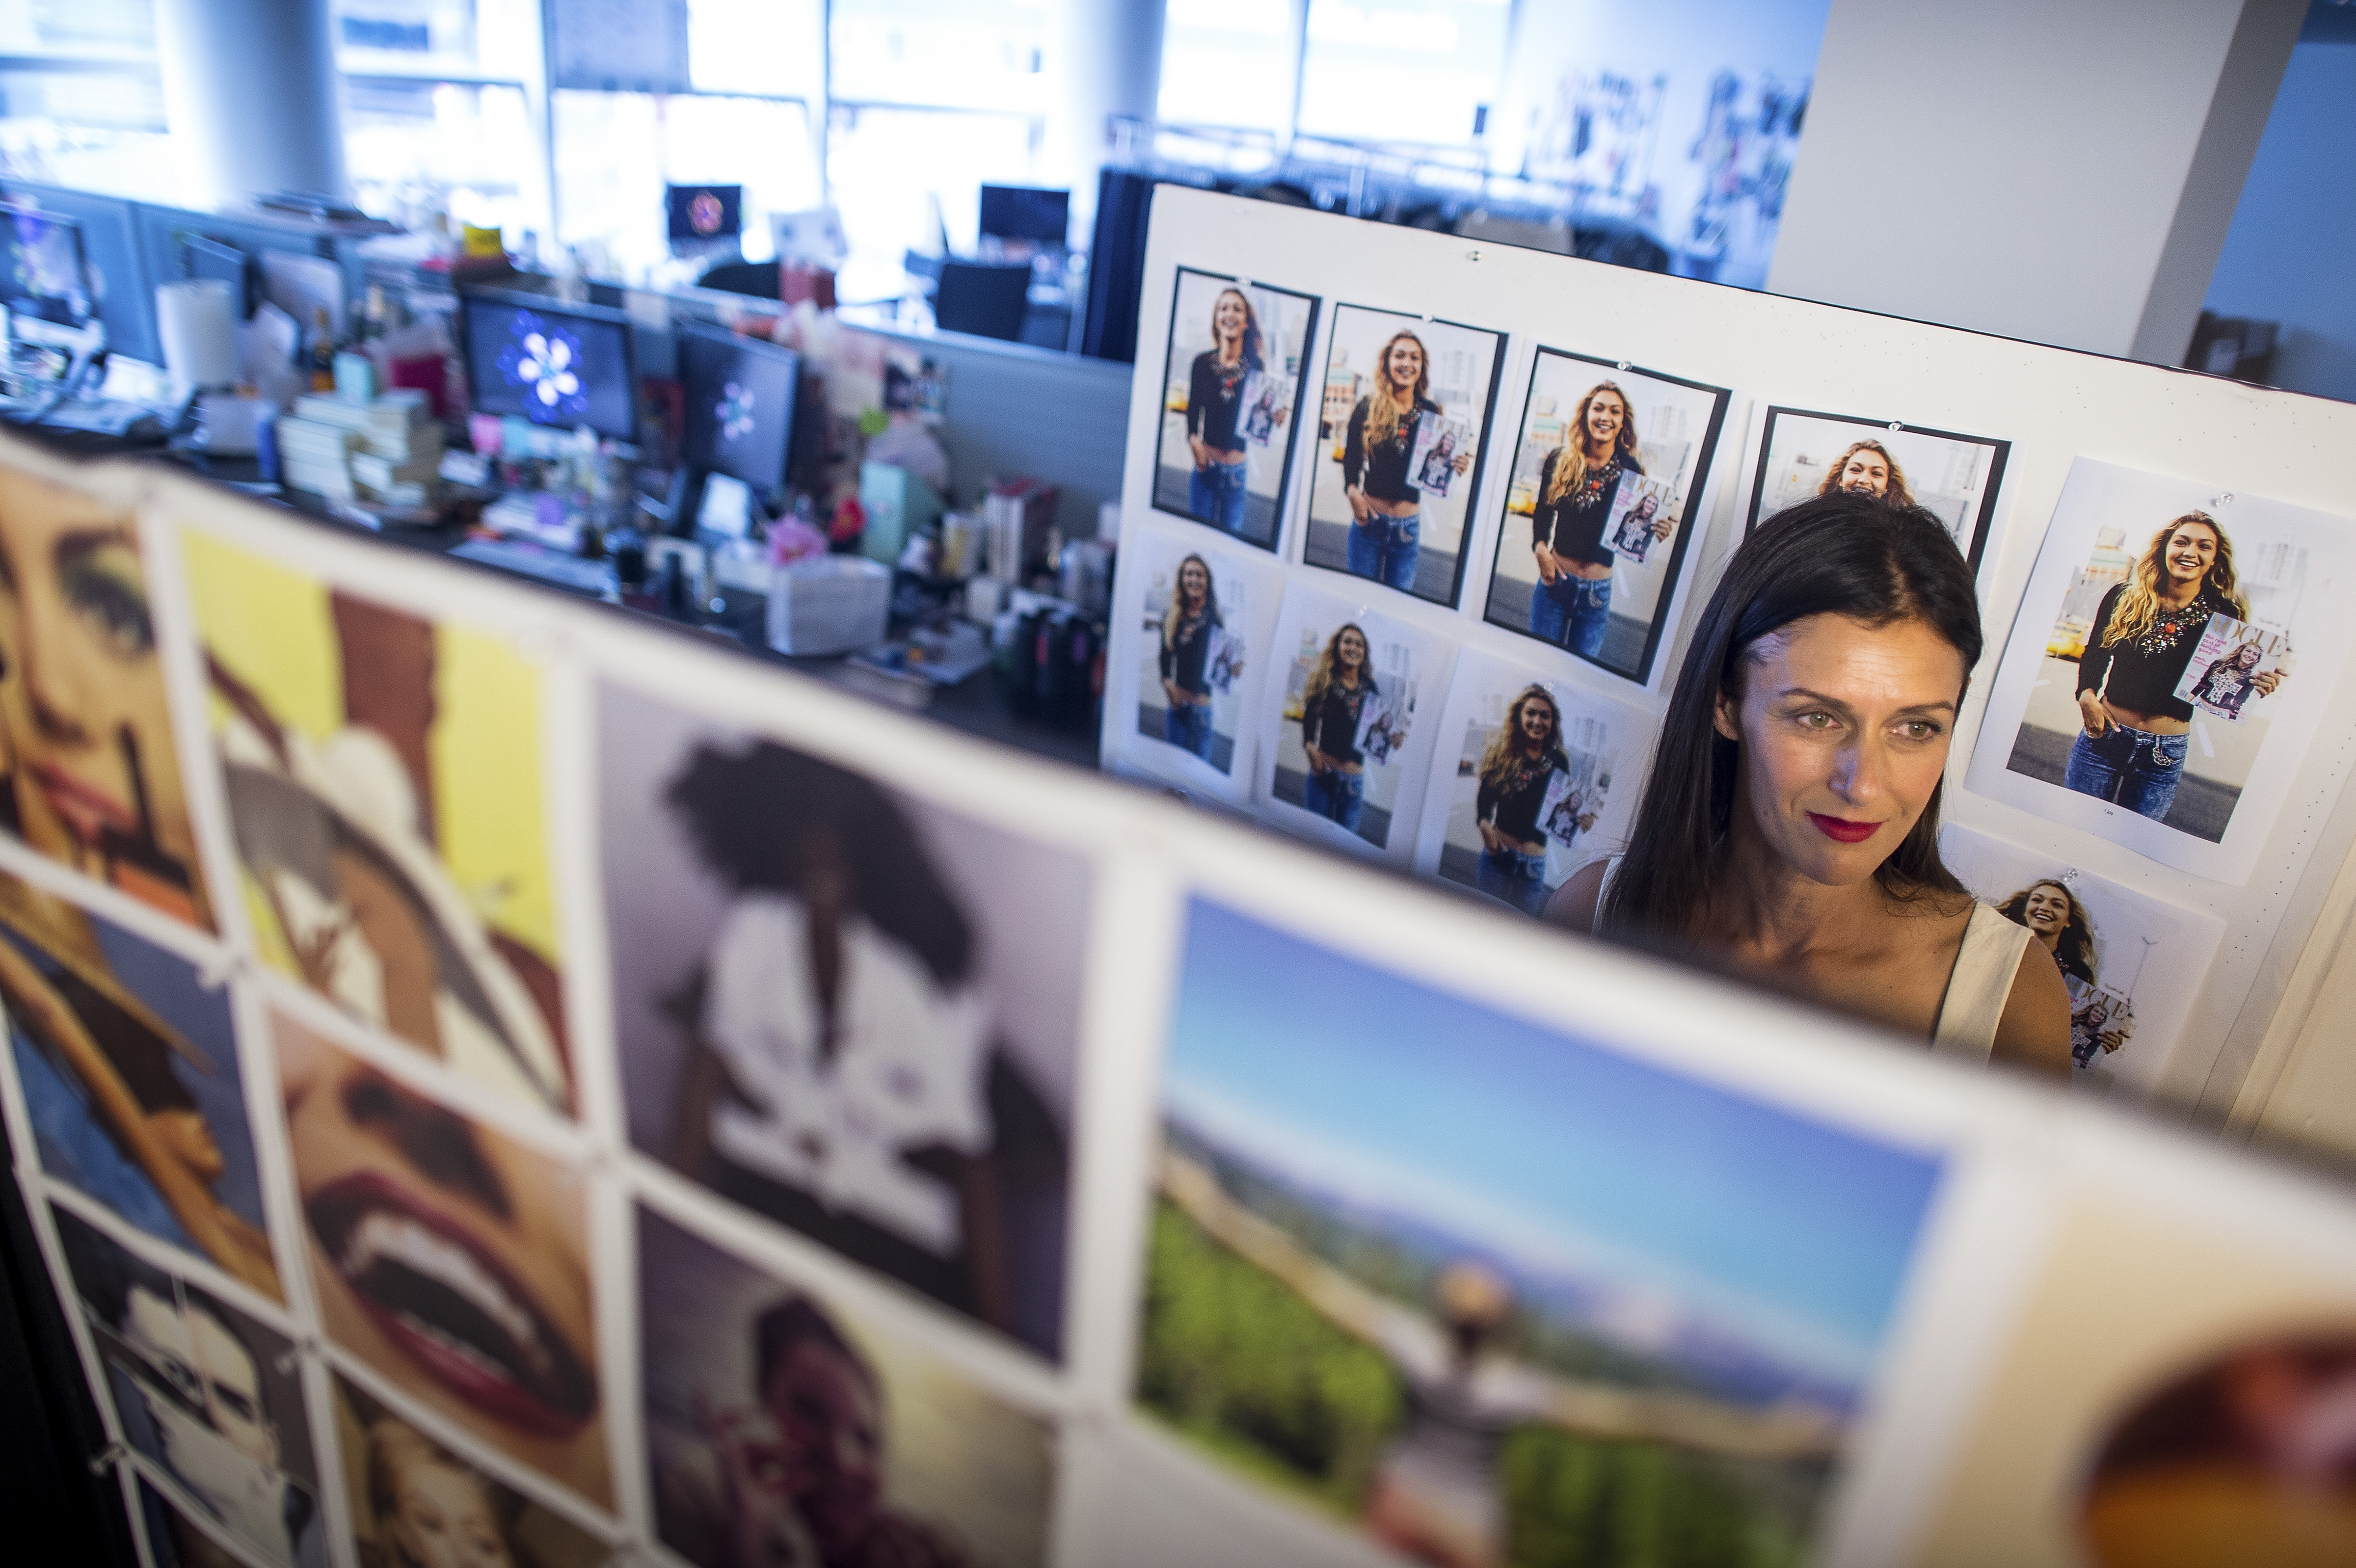 Sally Singer, Vogue's creative director for digital, looks at inspiration boards for the website's new look at the Condé Nast Times Square office in New York.